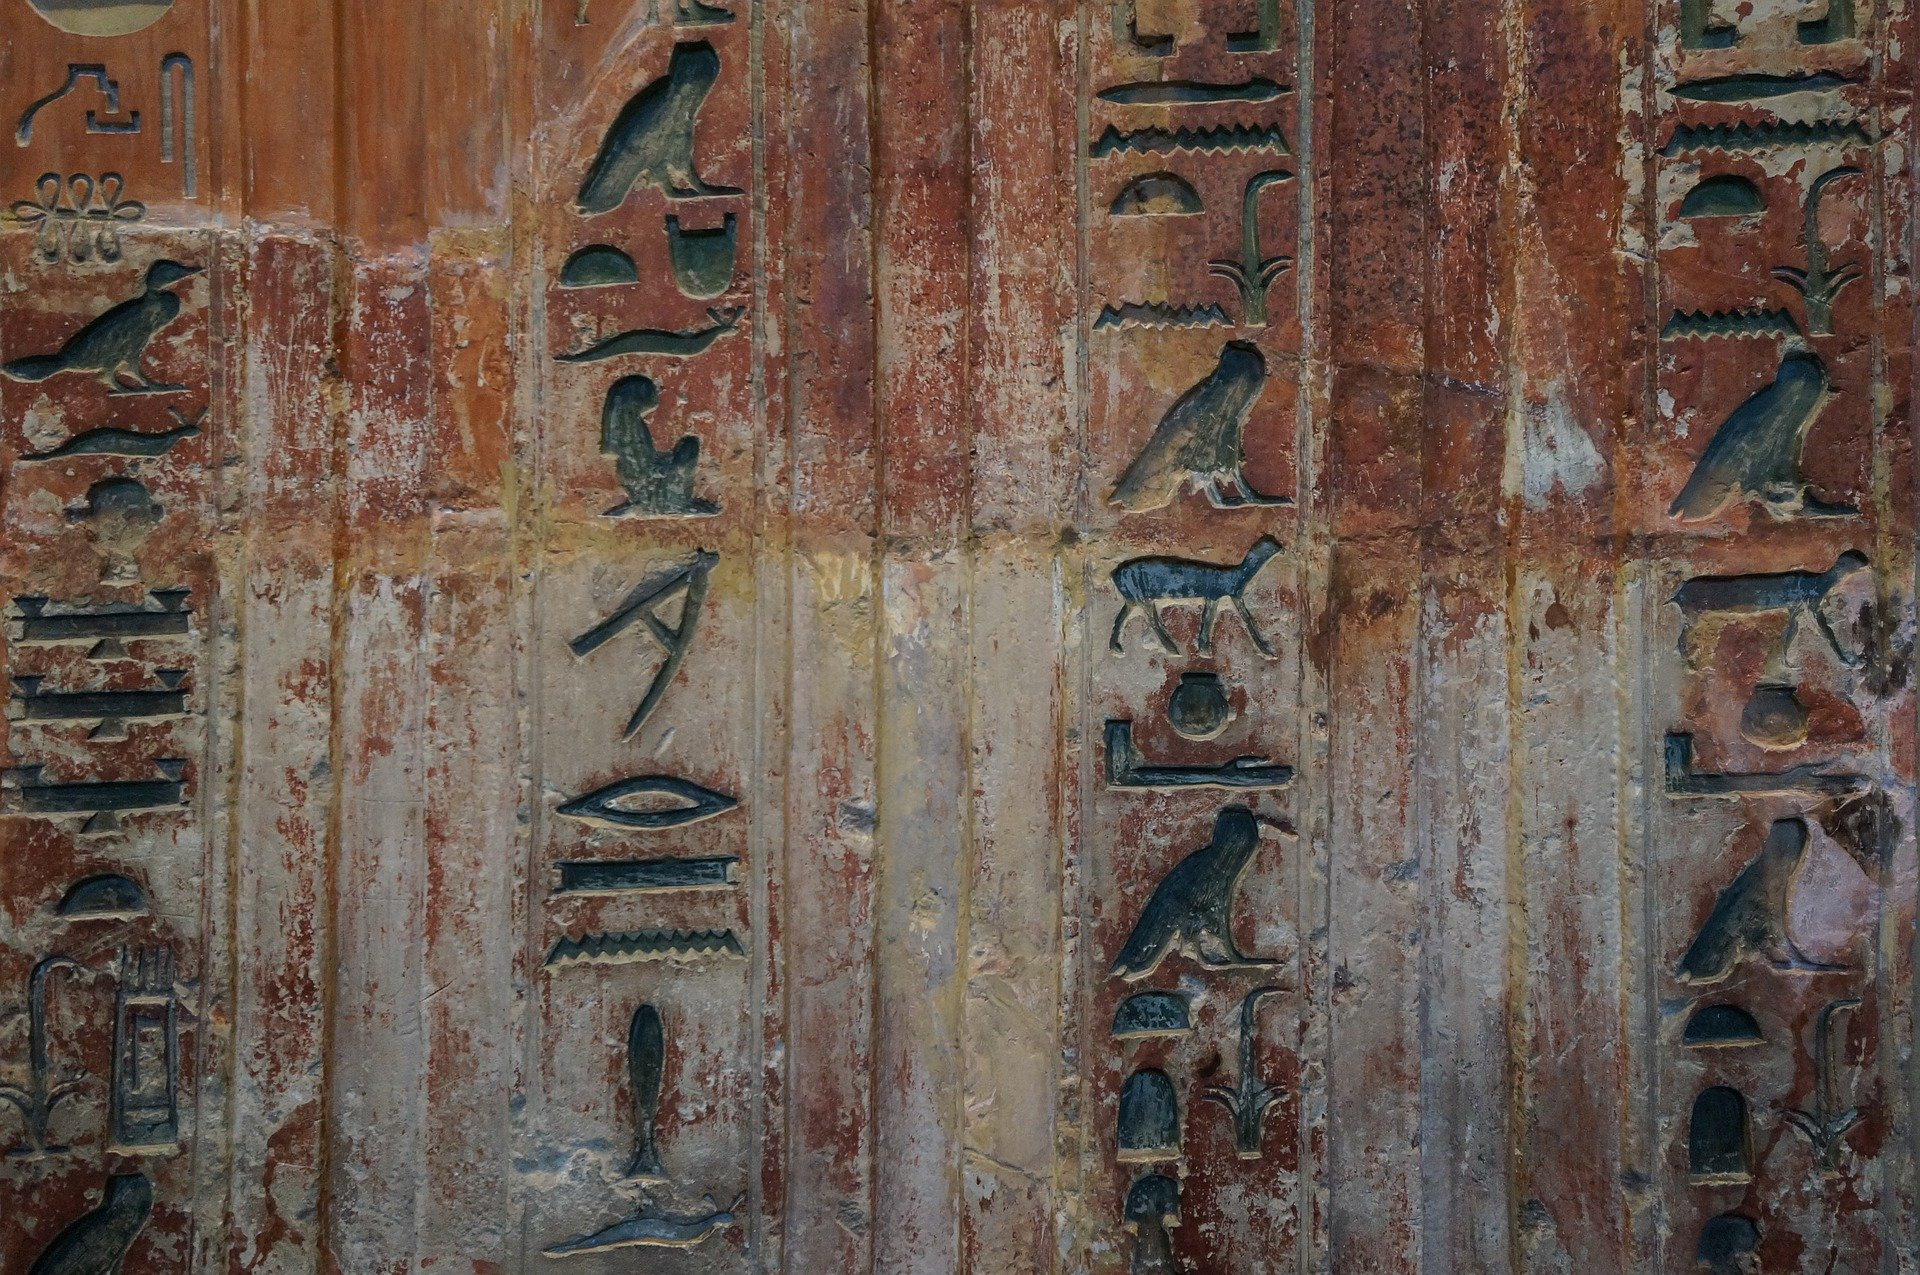 ancient Egyptian markings